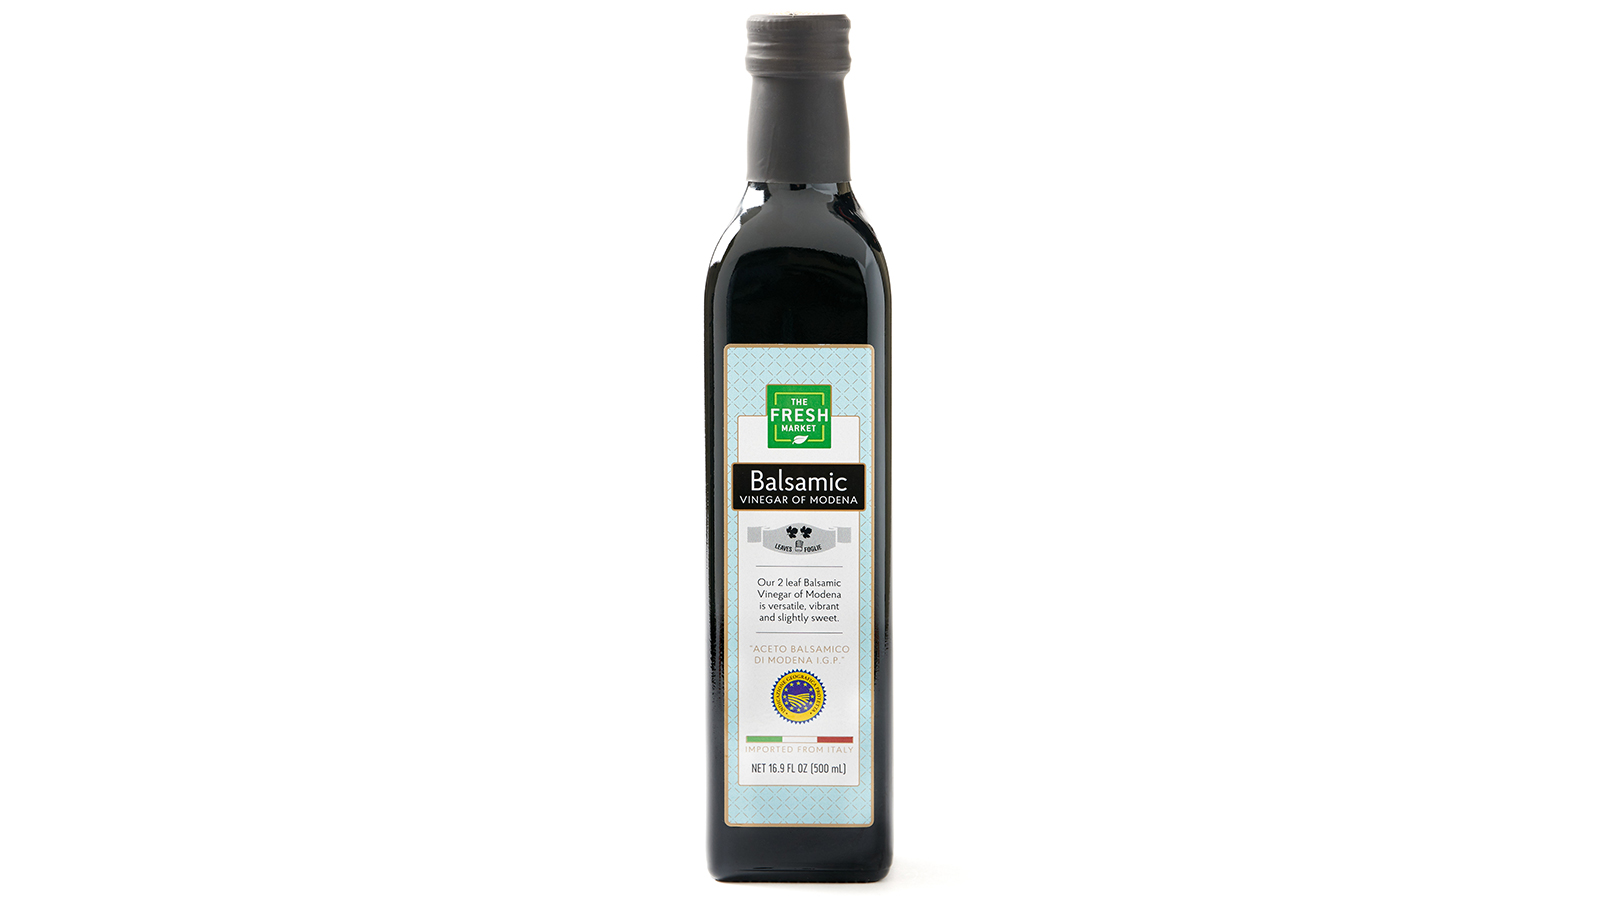 The Fresh Market Balsamic Vinegar